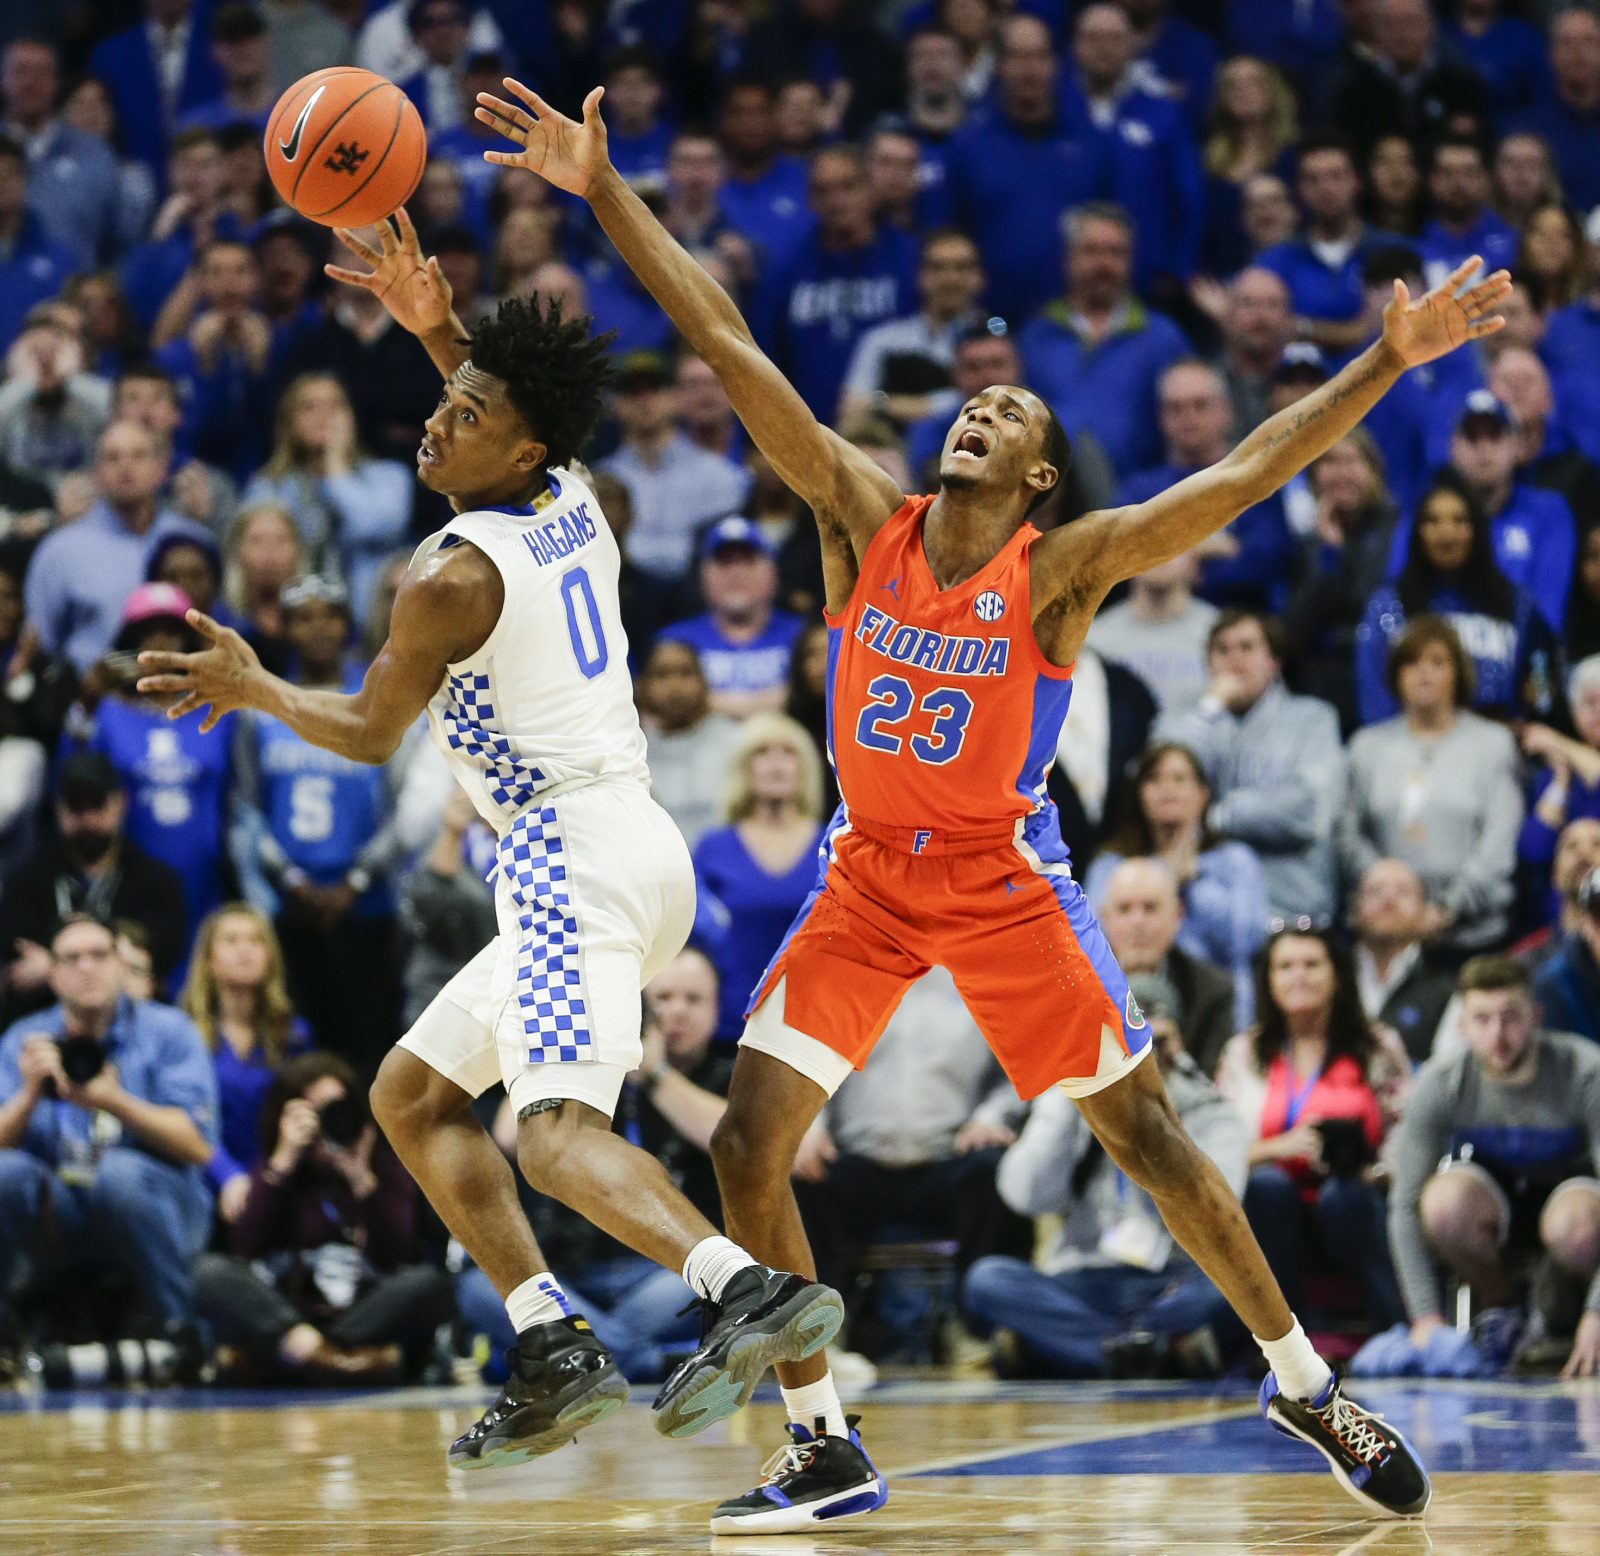 SEC Bracketology: Who's in, who's out? – Kentucky shooting for 2-seed